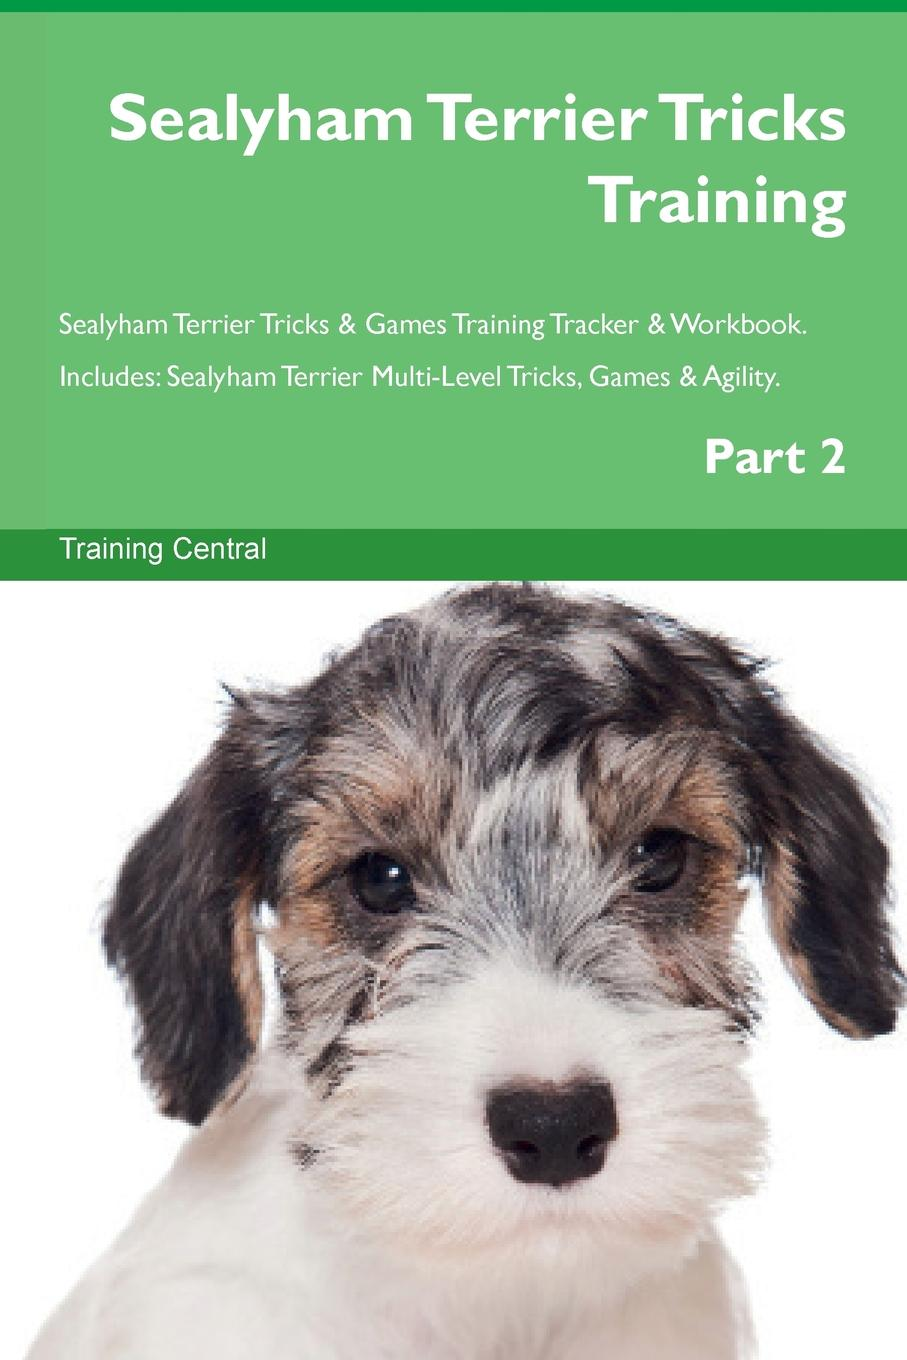 Training Central Sealyham Terrier Tricks Training Sealyham Terrier Tricks . Games Training Tracker . Workbook. Includes. Sealyham Terrier Multi-Level Tricks, Games . Agility. Part 2 this book loves you